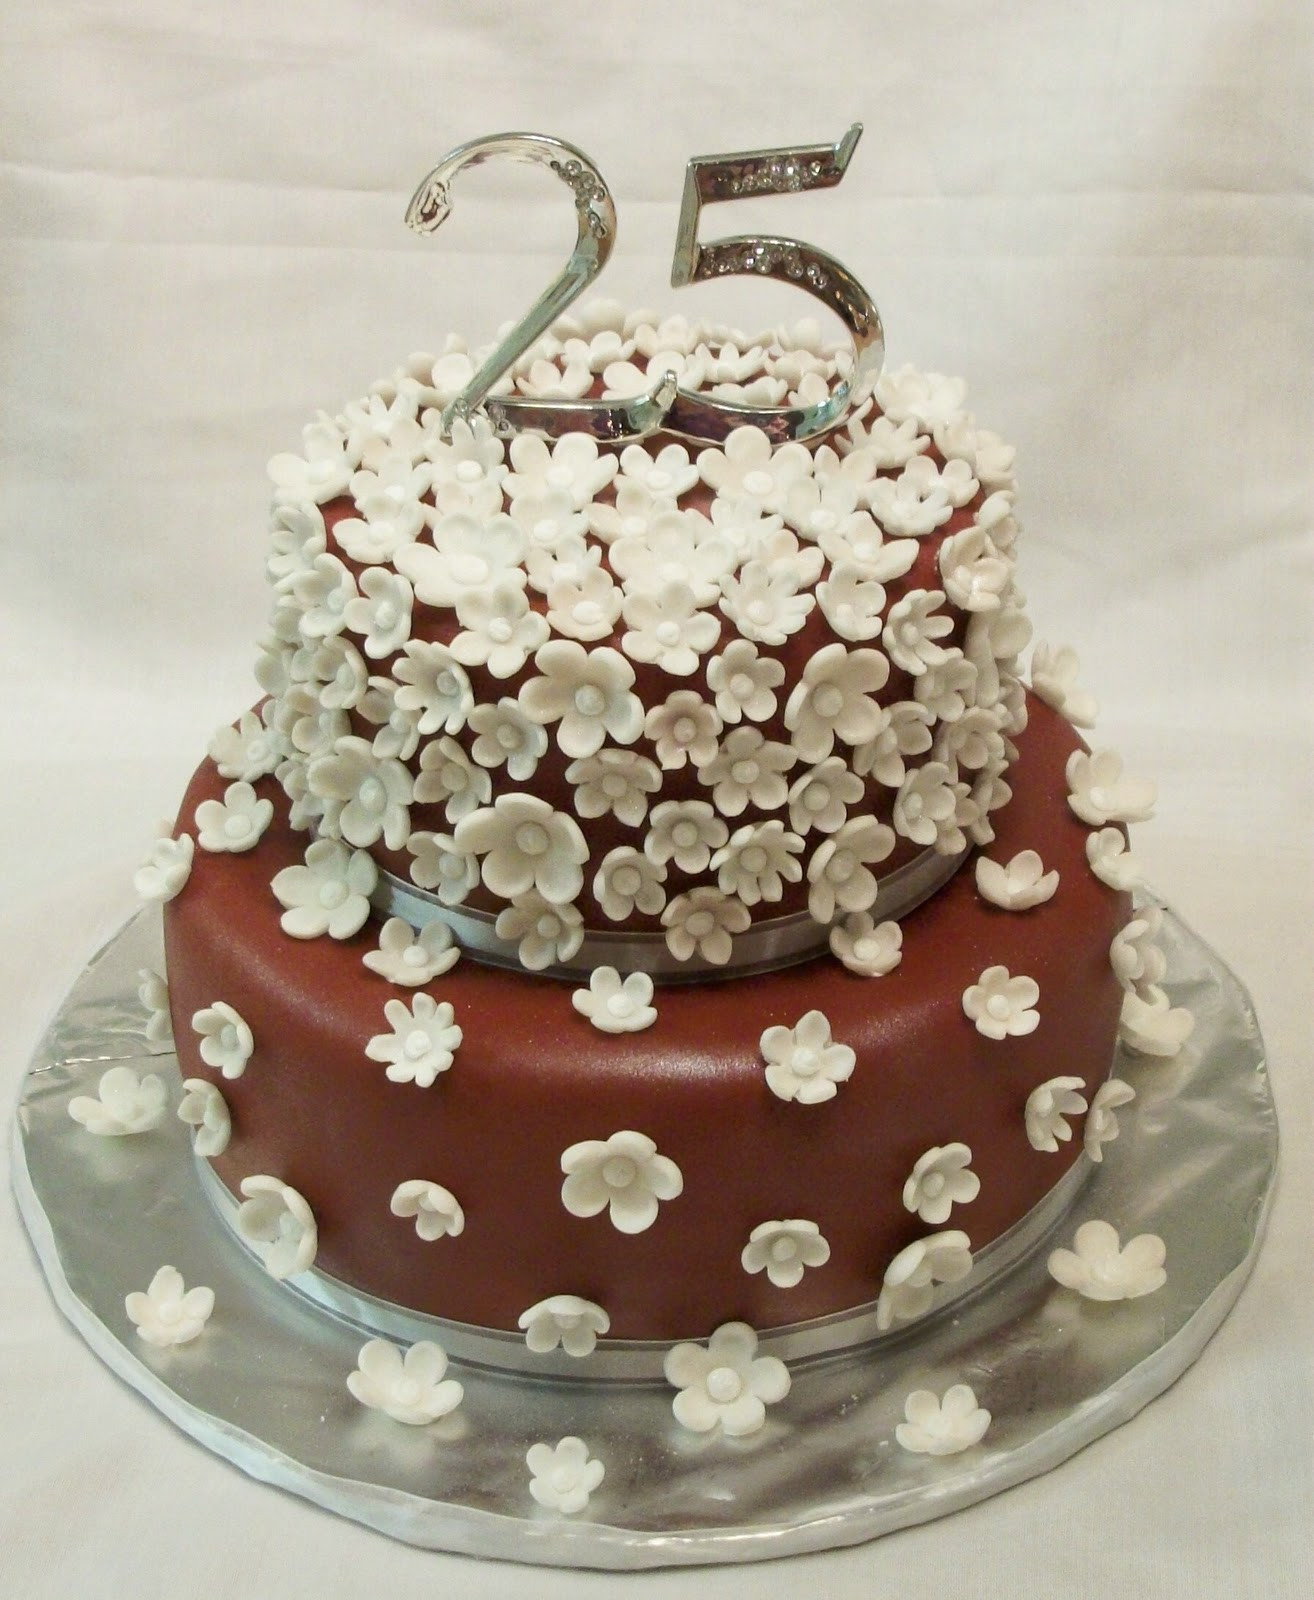 Wedding Birthday Cakes  Cool Wedding Marriage Anniversary Cakes With Names